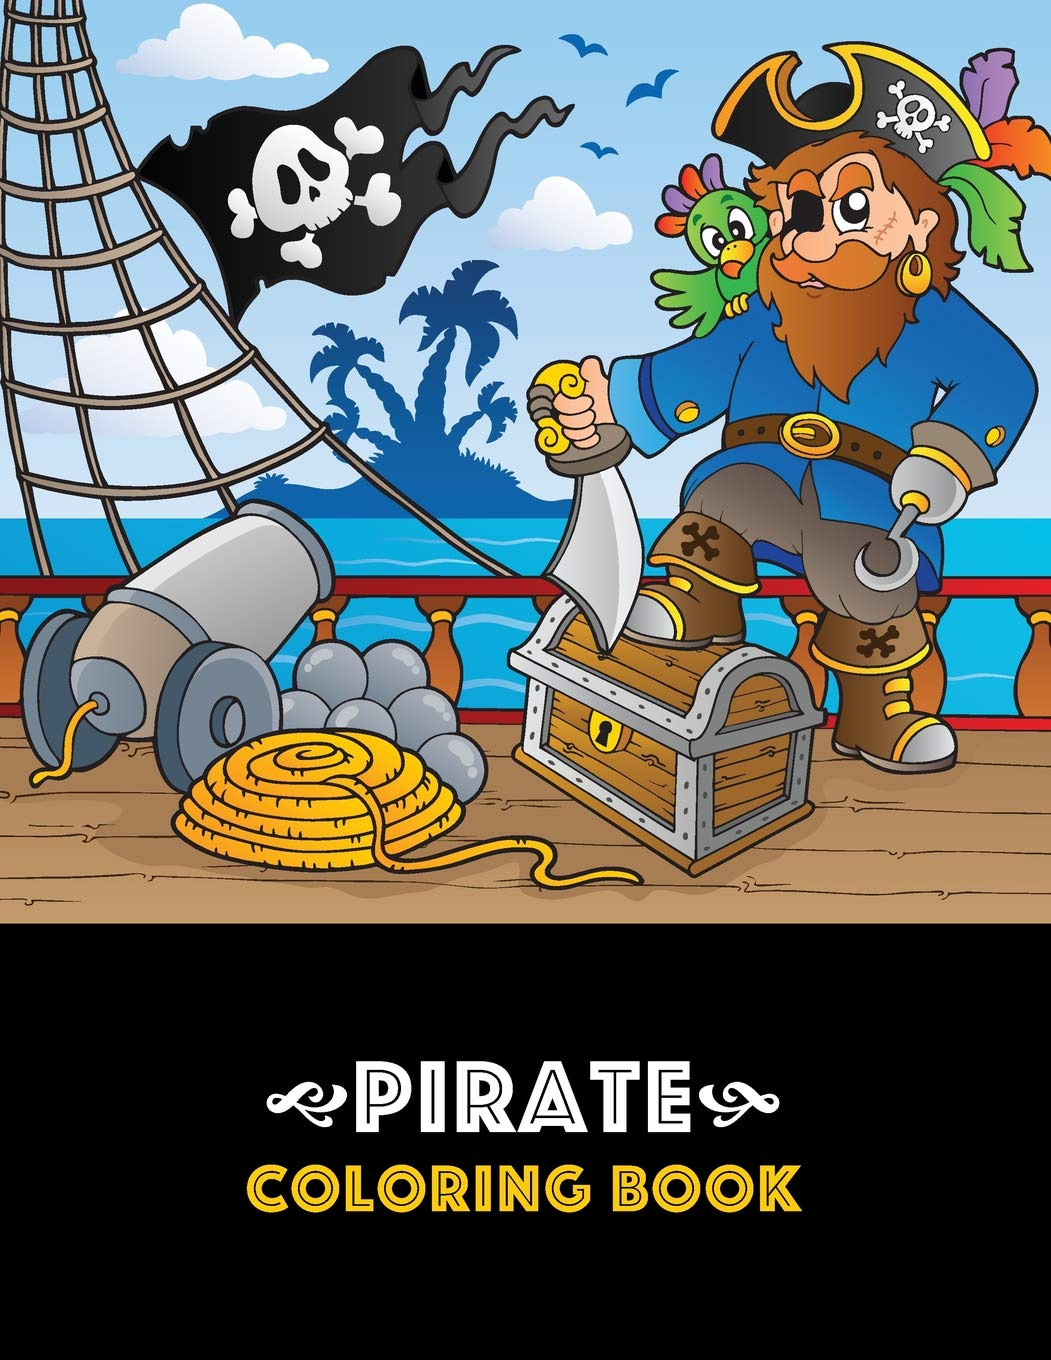 Humour Entertainment Treasure Etc Ships Pirate Coloring Book Pirate Theme Coloring Book For Kids Caribbean 8 12 Beginner Friendly And Relaxing Coloring Pages About Pirates Fun Easy Boys Or Girls Ages 4 8